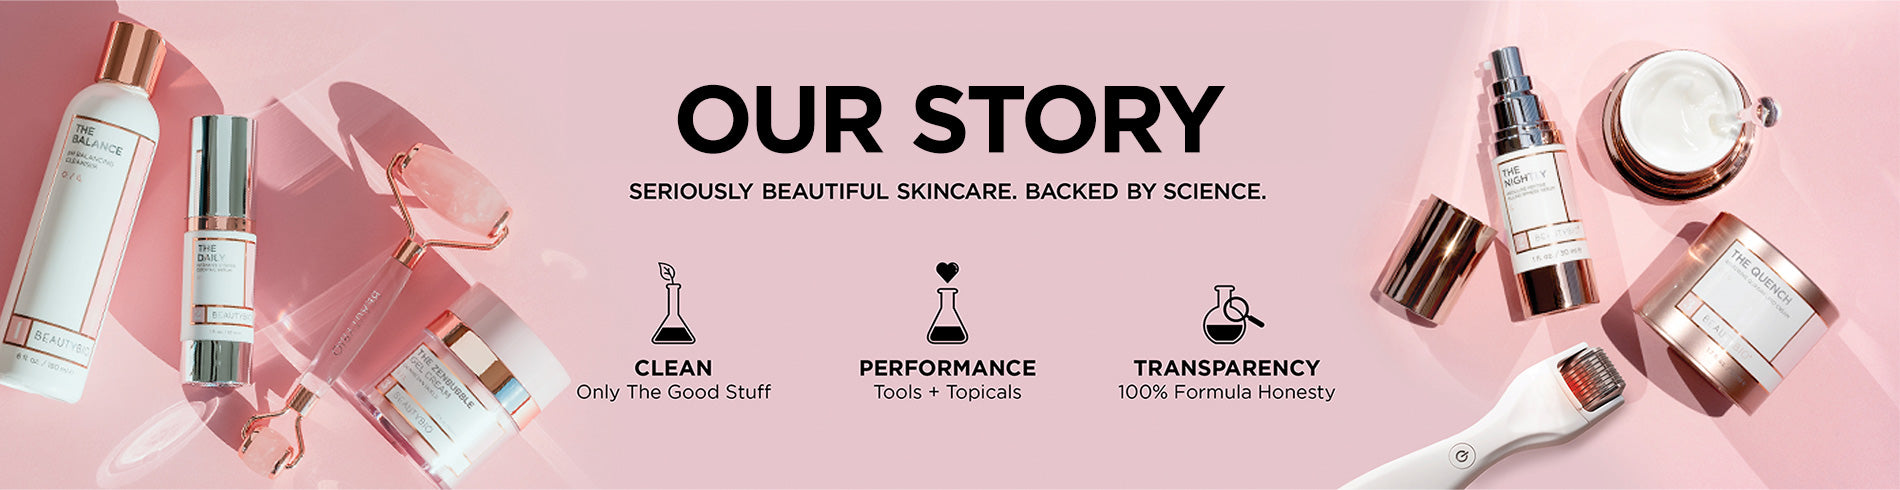 Our Story - Seriously Beautiful Skincare. Backed By Science.